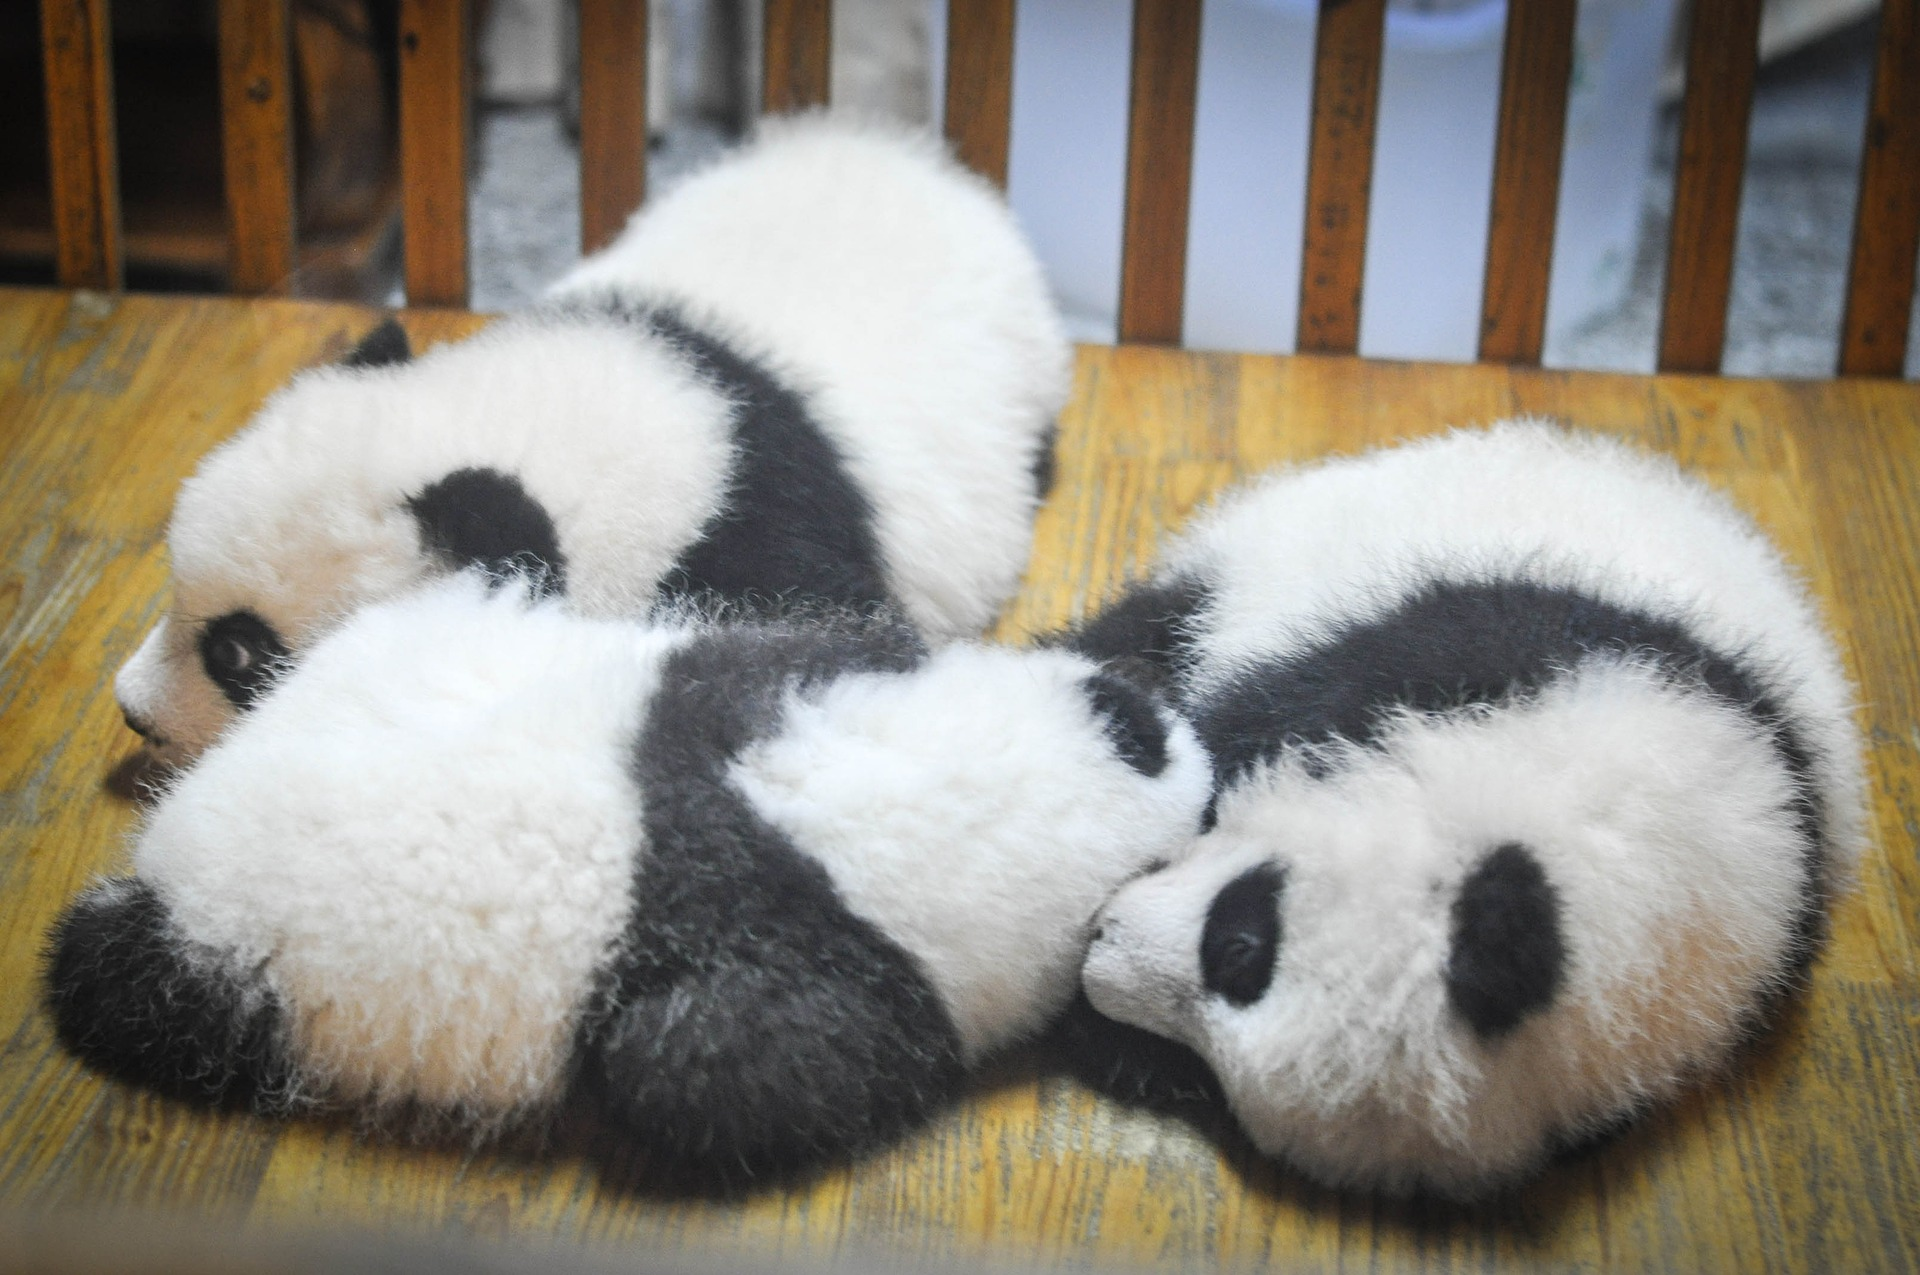 Panda Cubs: Giant Panda Life Cycle